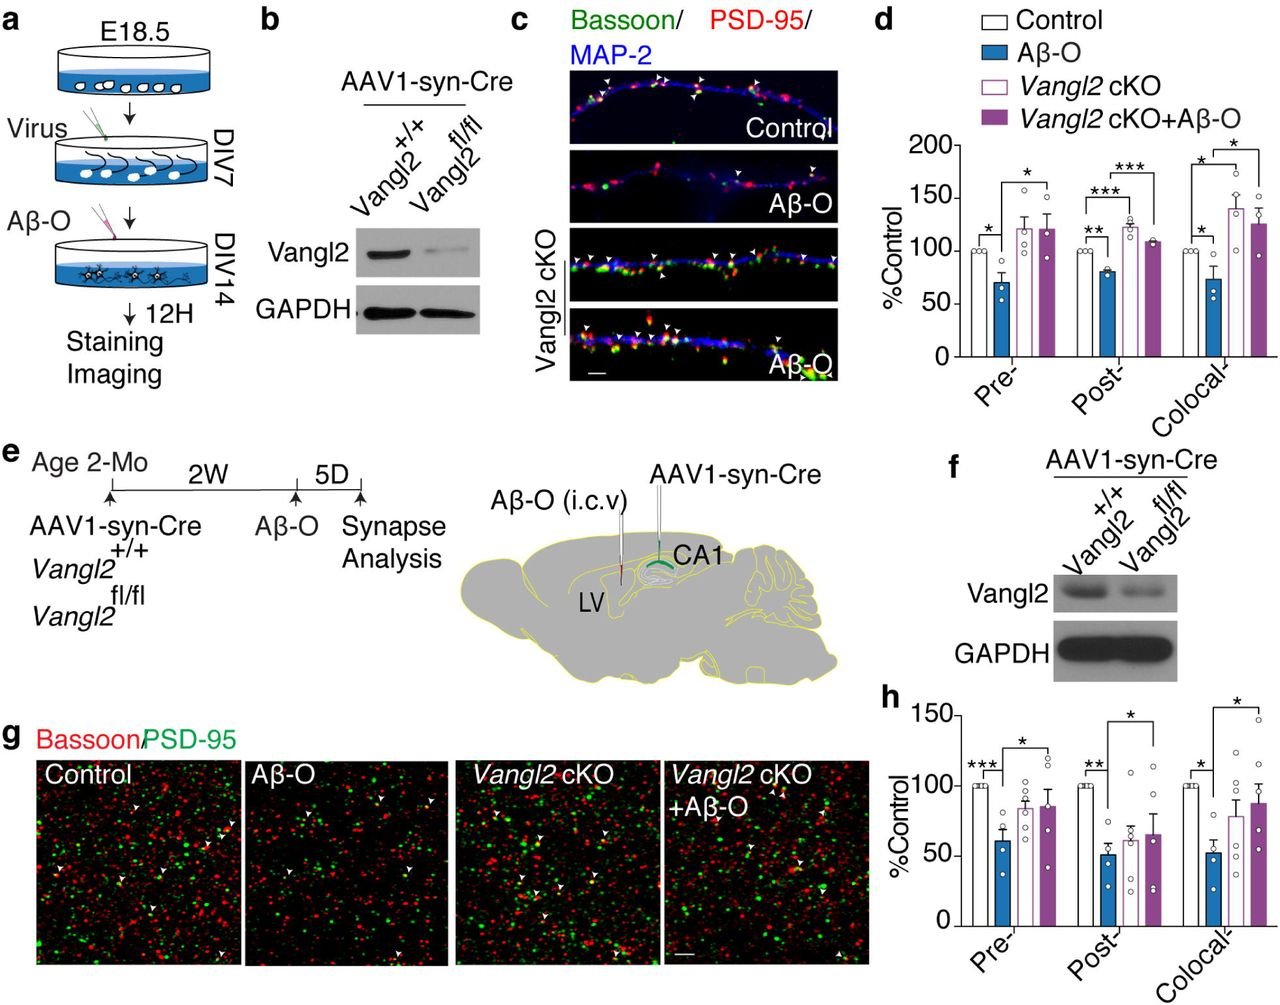 Vangl2 is required for Aβ oligomer-induced synapse loss in vitro and in vivo . a, Schematics illustrating the experimental design. AAV1-hSyn-eGFP-Cre virus was added to hippocampal neuron cultures on DIV7 for 7 days and then oligomeric Aβ42 was added. 12 hours later after adding oligomeric Aβ42, cultures were fixed for staining synaptic markers. b, Western blot showing the level of Celsr3 and Vangl2 proteins in cultures infected with the AAV1-hSyn-eGFP-Cre virus. c, Immunostaining for pre-(green) and postsynaptic (red) puncta of glutamatergic synapses (arrowheads) in 14-DIV hippocampal cultures from littermate Vangl2 +/+ or Vangl2 fl/fl with or without oligomeric Aβ42. d, Quantification of ( c ). n=3 for Vangl2 +/+ mice, n=4 for Vangl2 fl/fl from 3 independent experiments. e, Schematics illustrating the experimental design. AAV1-hSyn-eGFP-Cre virus was injected into CA1 region of the hippocampus bilaterally. 2 weeks later, oligomeric Aβ was injected into cerebroventricular. 5 days after Aβ oligomer injection, animals were fixed with perfusion and sectioning and stained with synaptic markers. f, Vangl2 protein level in the total hippocampus extract from animals injected with the AAV1- hSyn-eGFP-Cre virus. g, Representative images of Bassoon (red)- and PSD95 (green)- immunoreactive puncta (arrowheads) in stratum radiatum of Vangl2 +/+ and Vangl2 fl/fl hippocampus (CA1) with or without oligomeric Aβ injection and quantification of synapse numbers. h, Quantification of ( g ). One-way ANOVA. n=8 of Vangl2 +/+ mice, n=3 of Vangl2 +/+ mice with oligomeric Aβ injection, n=6 of Vangl2 fl/fl mice and n=5 of Vangl2 fl/fl mice with oligomeric Aβ injection. * P